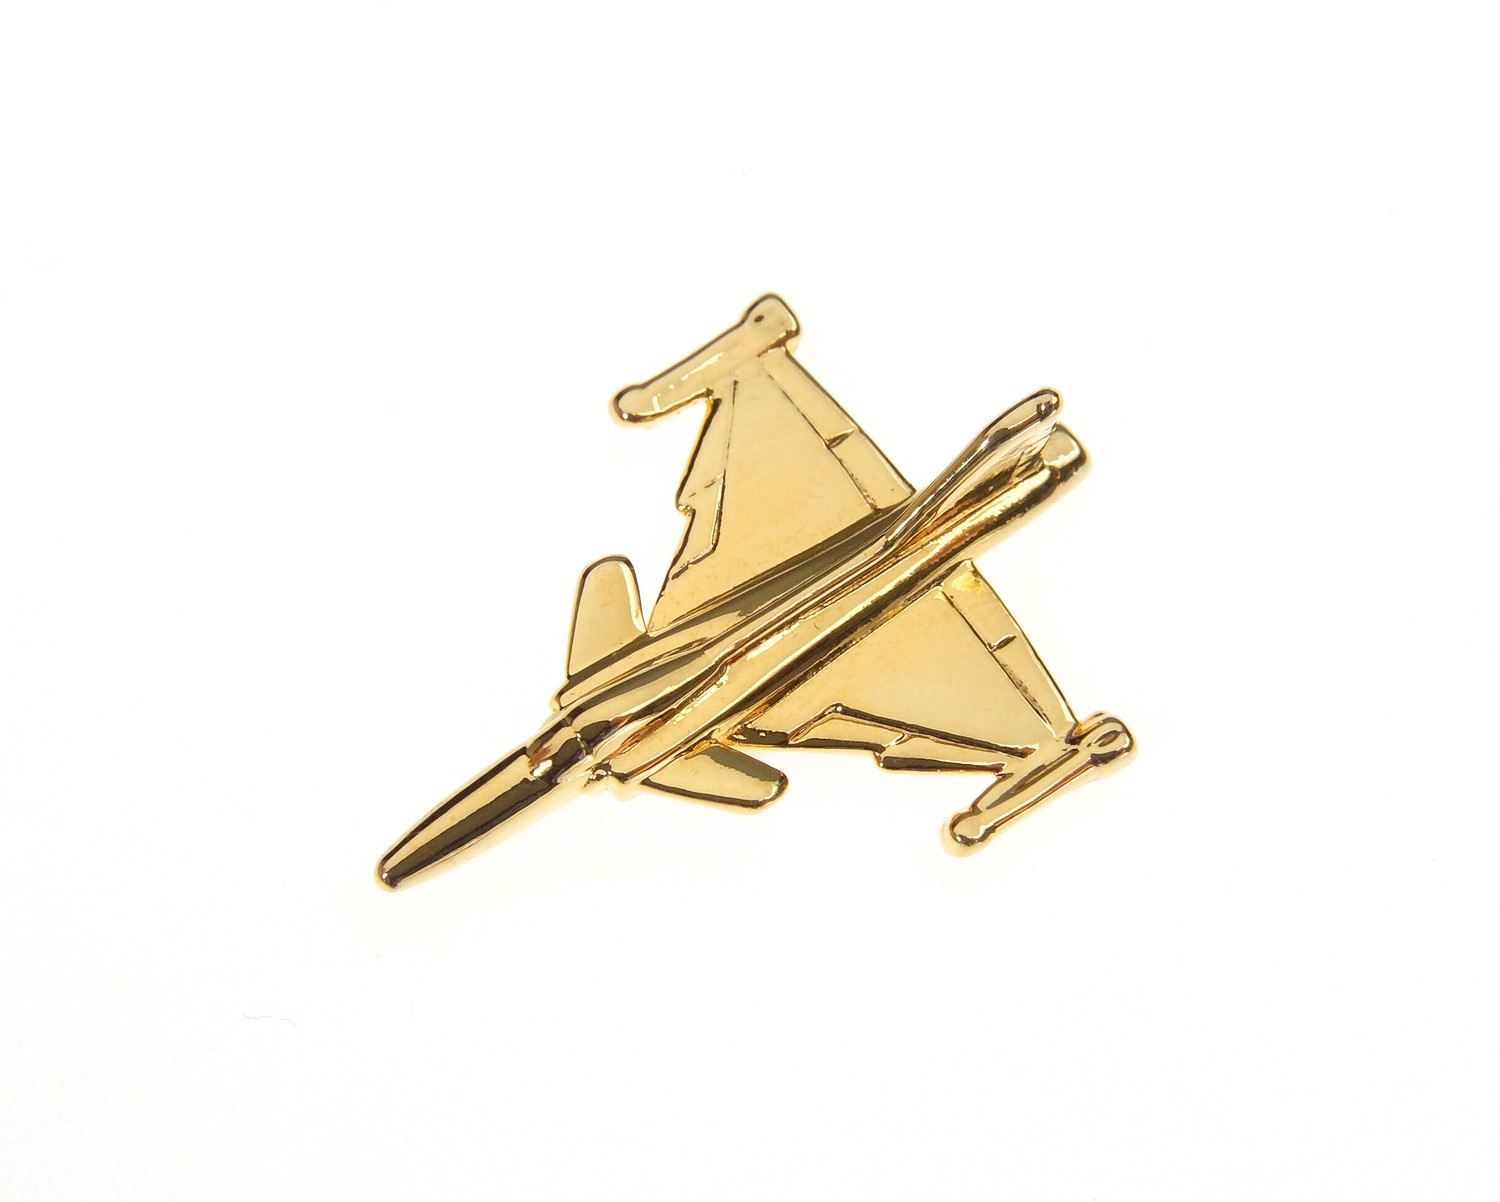 Gripen Gold Plated Tie / Lapel Pin